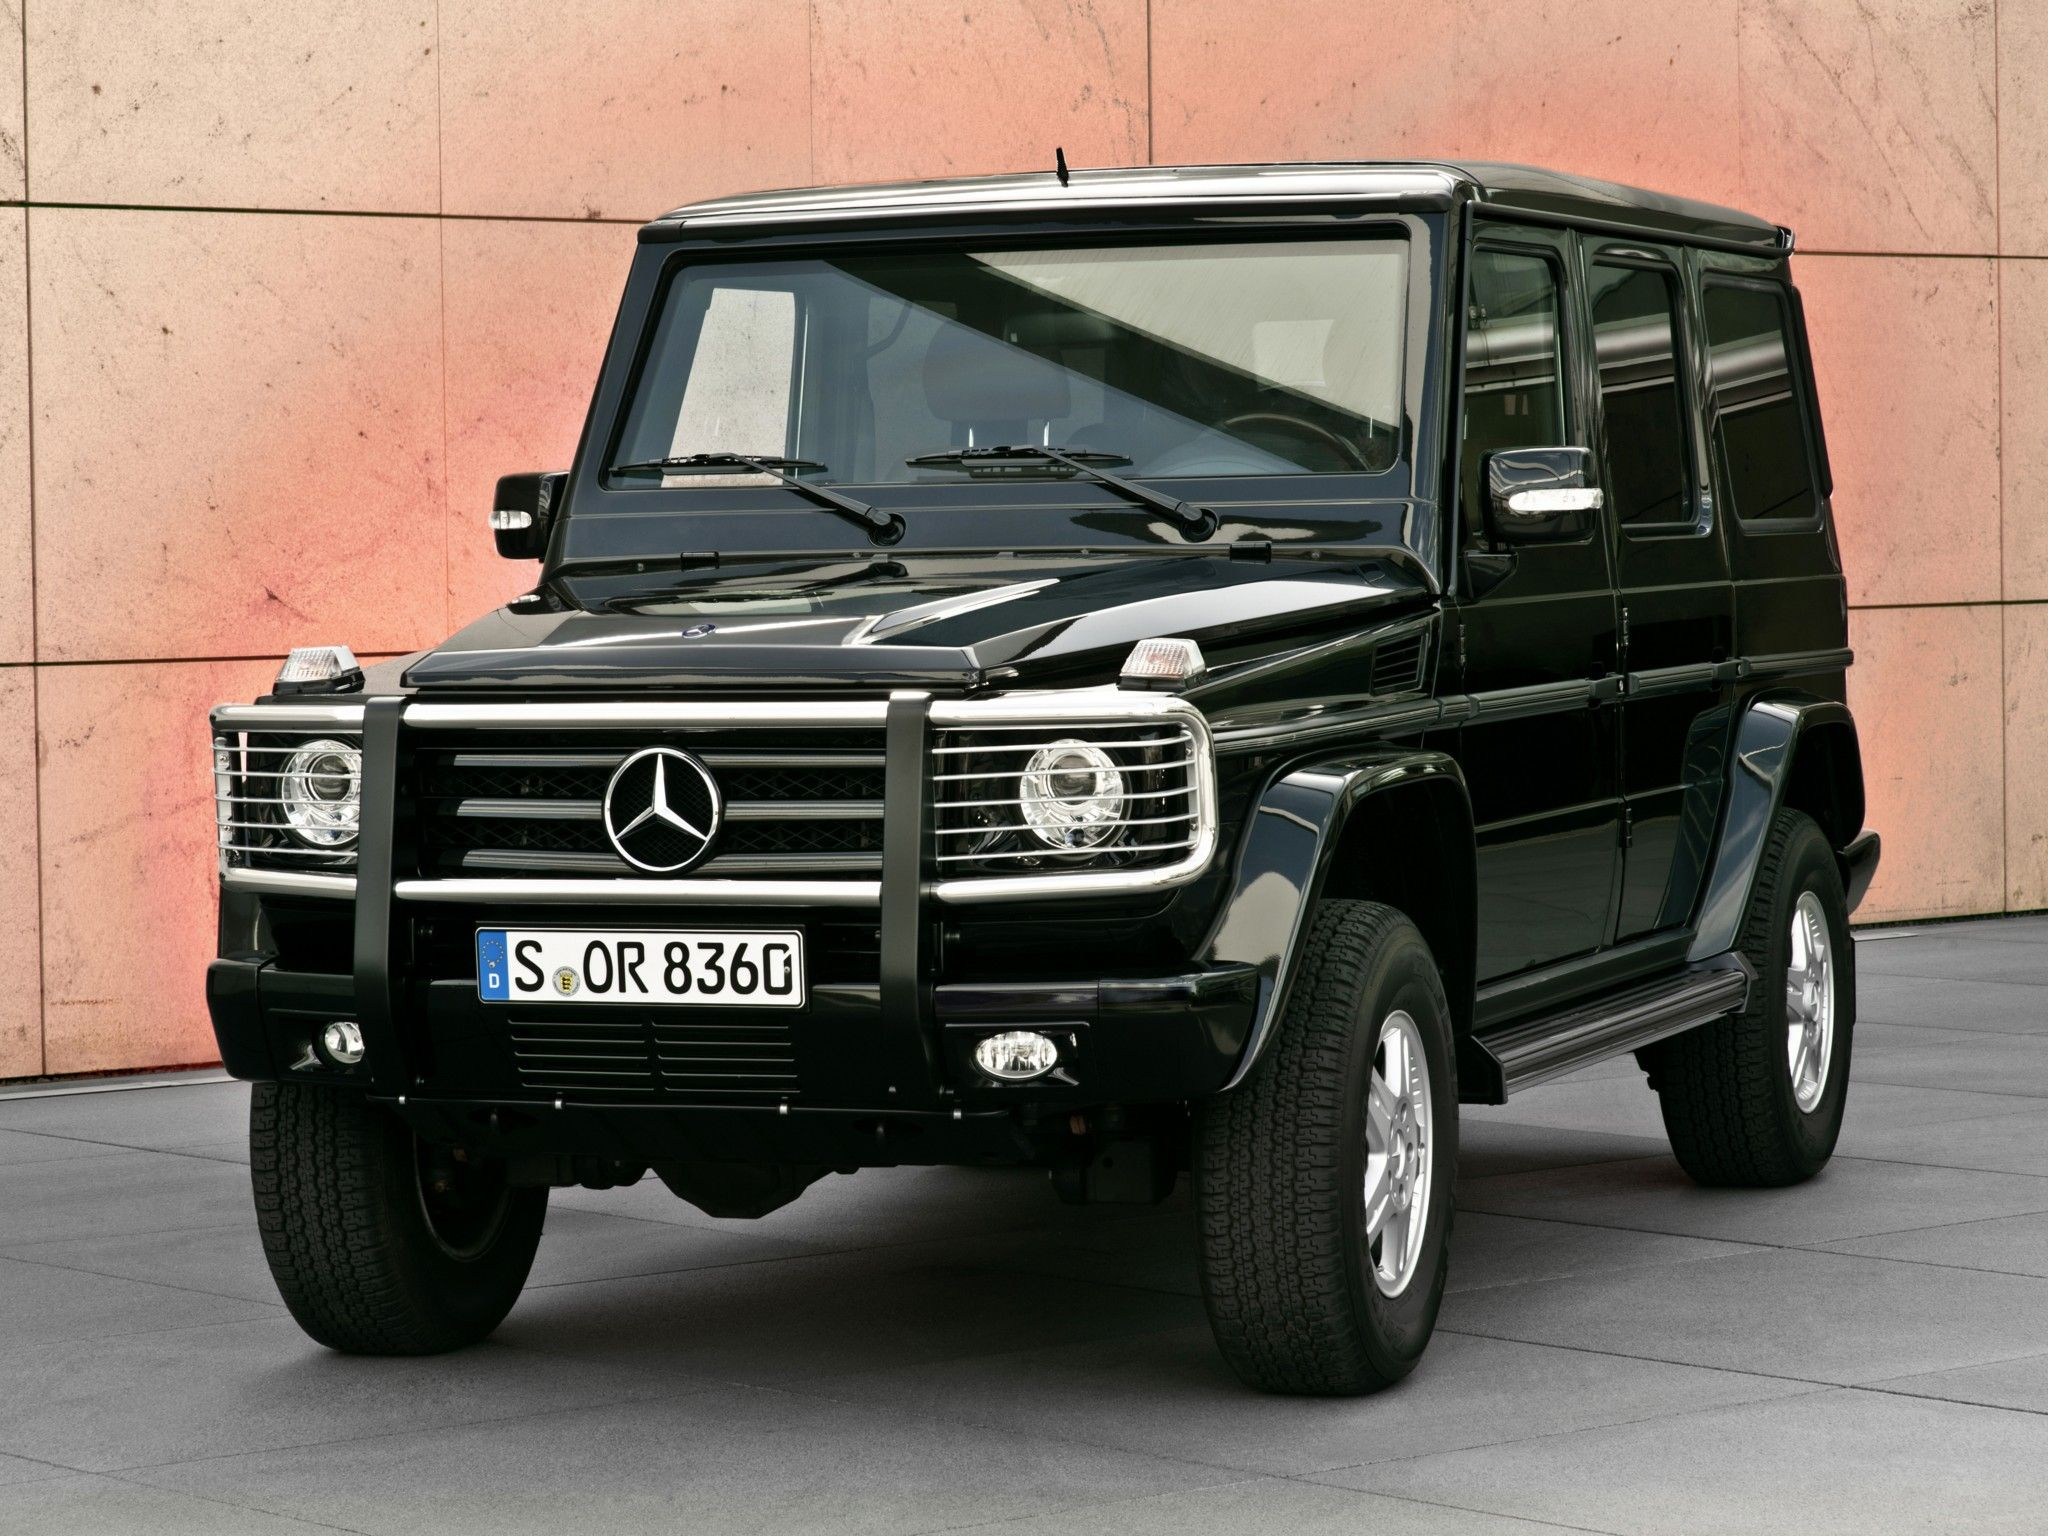 2009 armored mercedes benz g 500 guard w463 suv 4x4 g. Black Bedroom Furniture Sets. Home Design Ideas